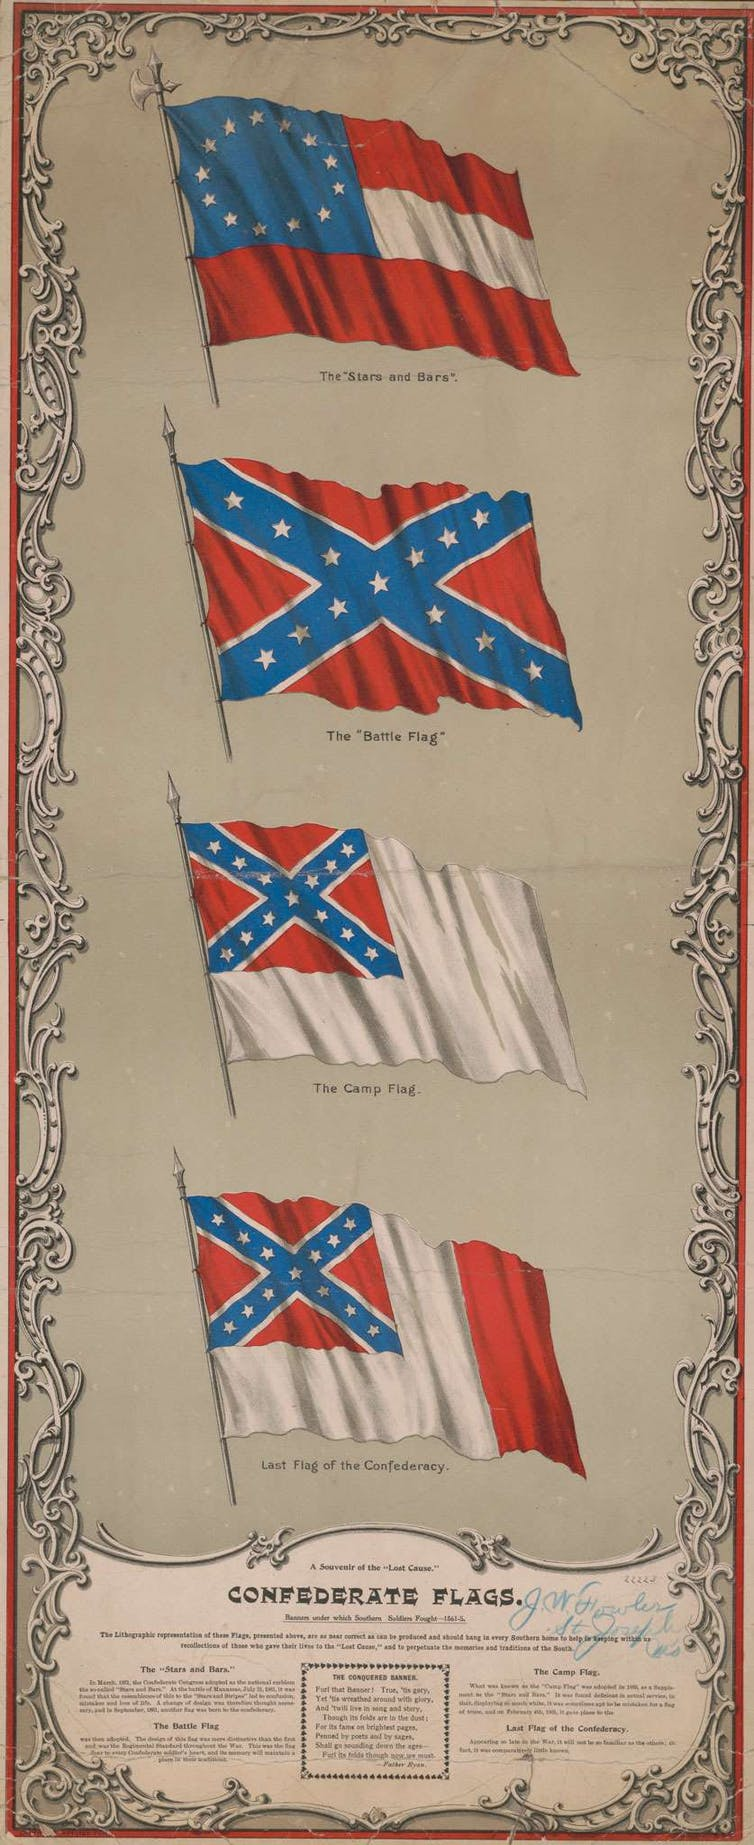 Four flags of the Confederacy